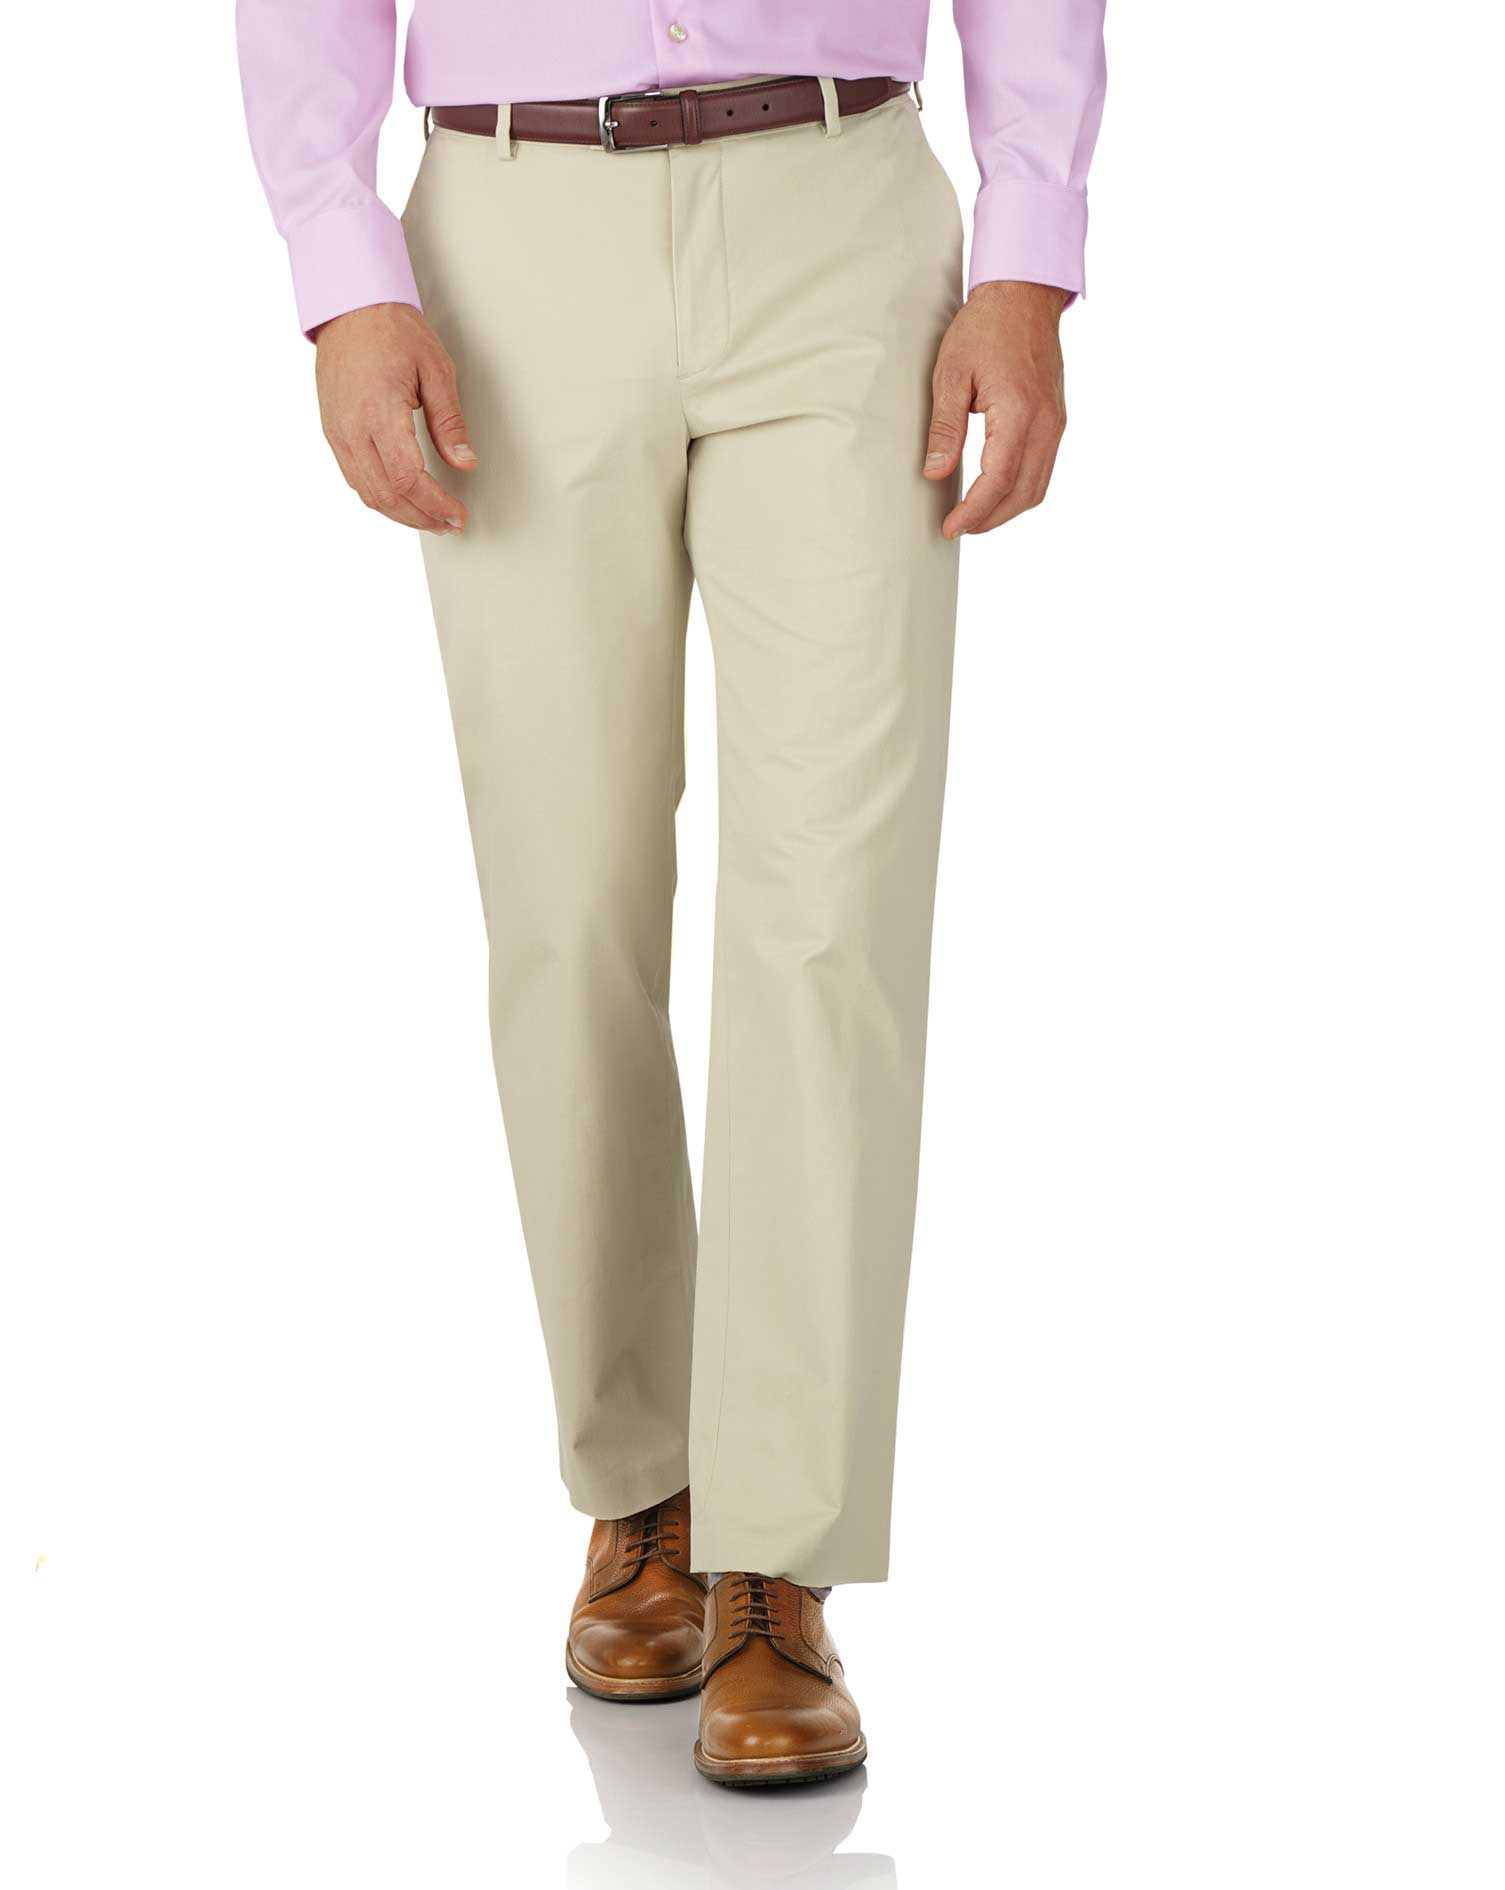 Stone Classic Fit Stretch Cotton Chino Trousers Size W36 L34 by Charles Tyrwhitt